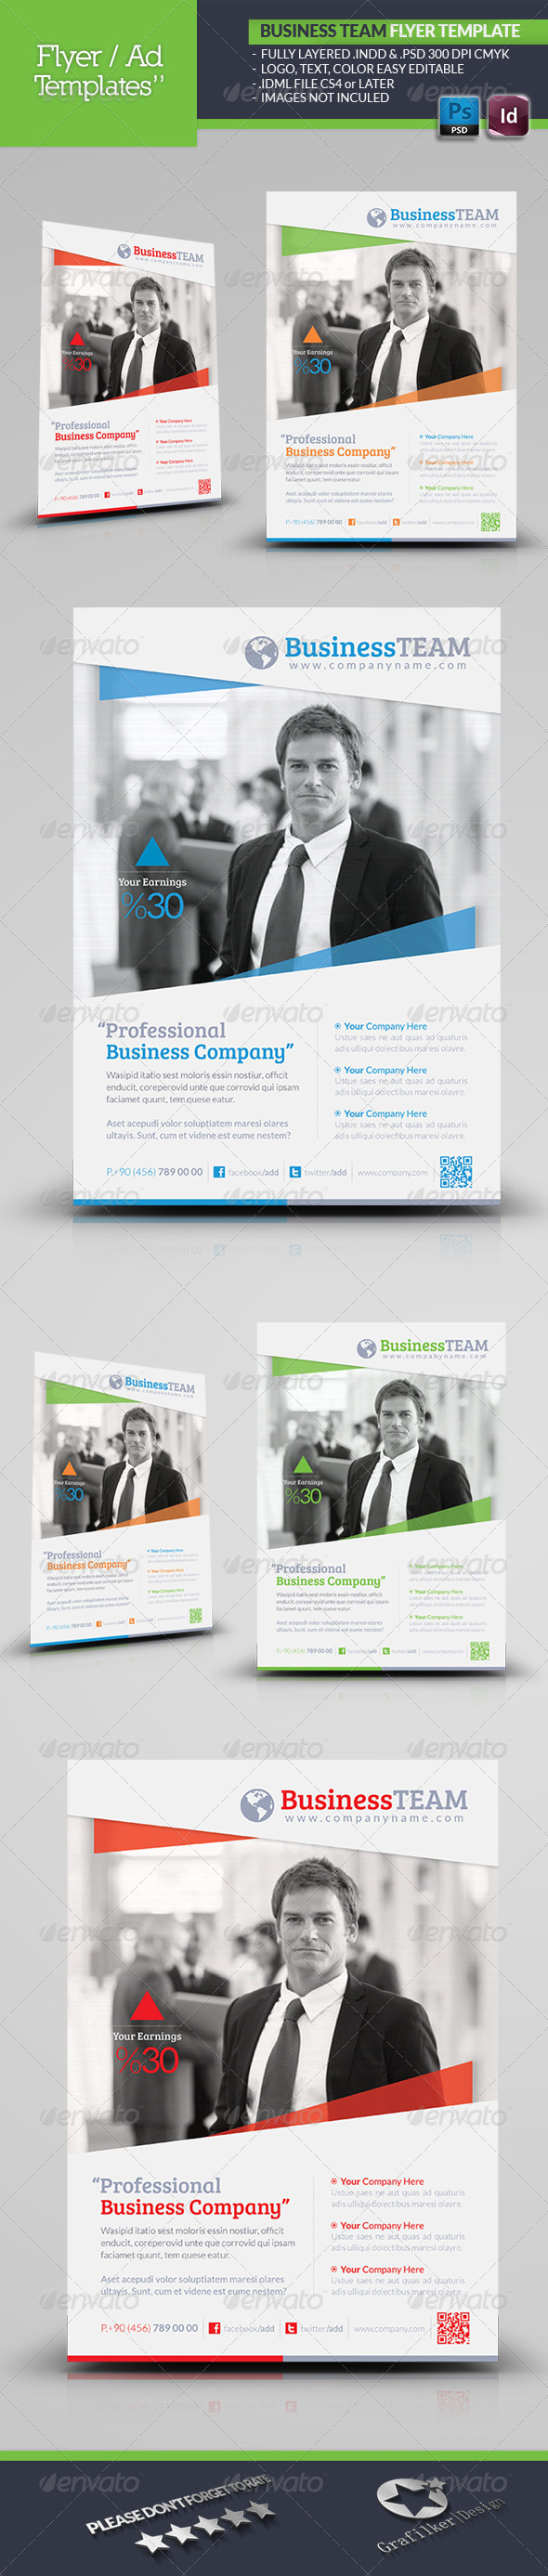 GraphicRiver Business Team Flyer Template 4827119